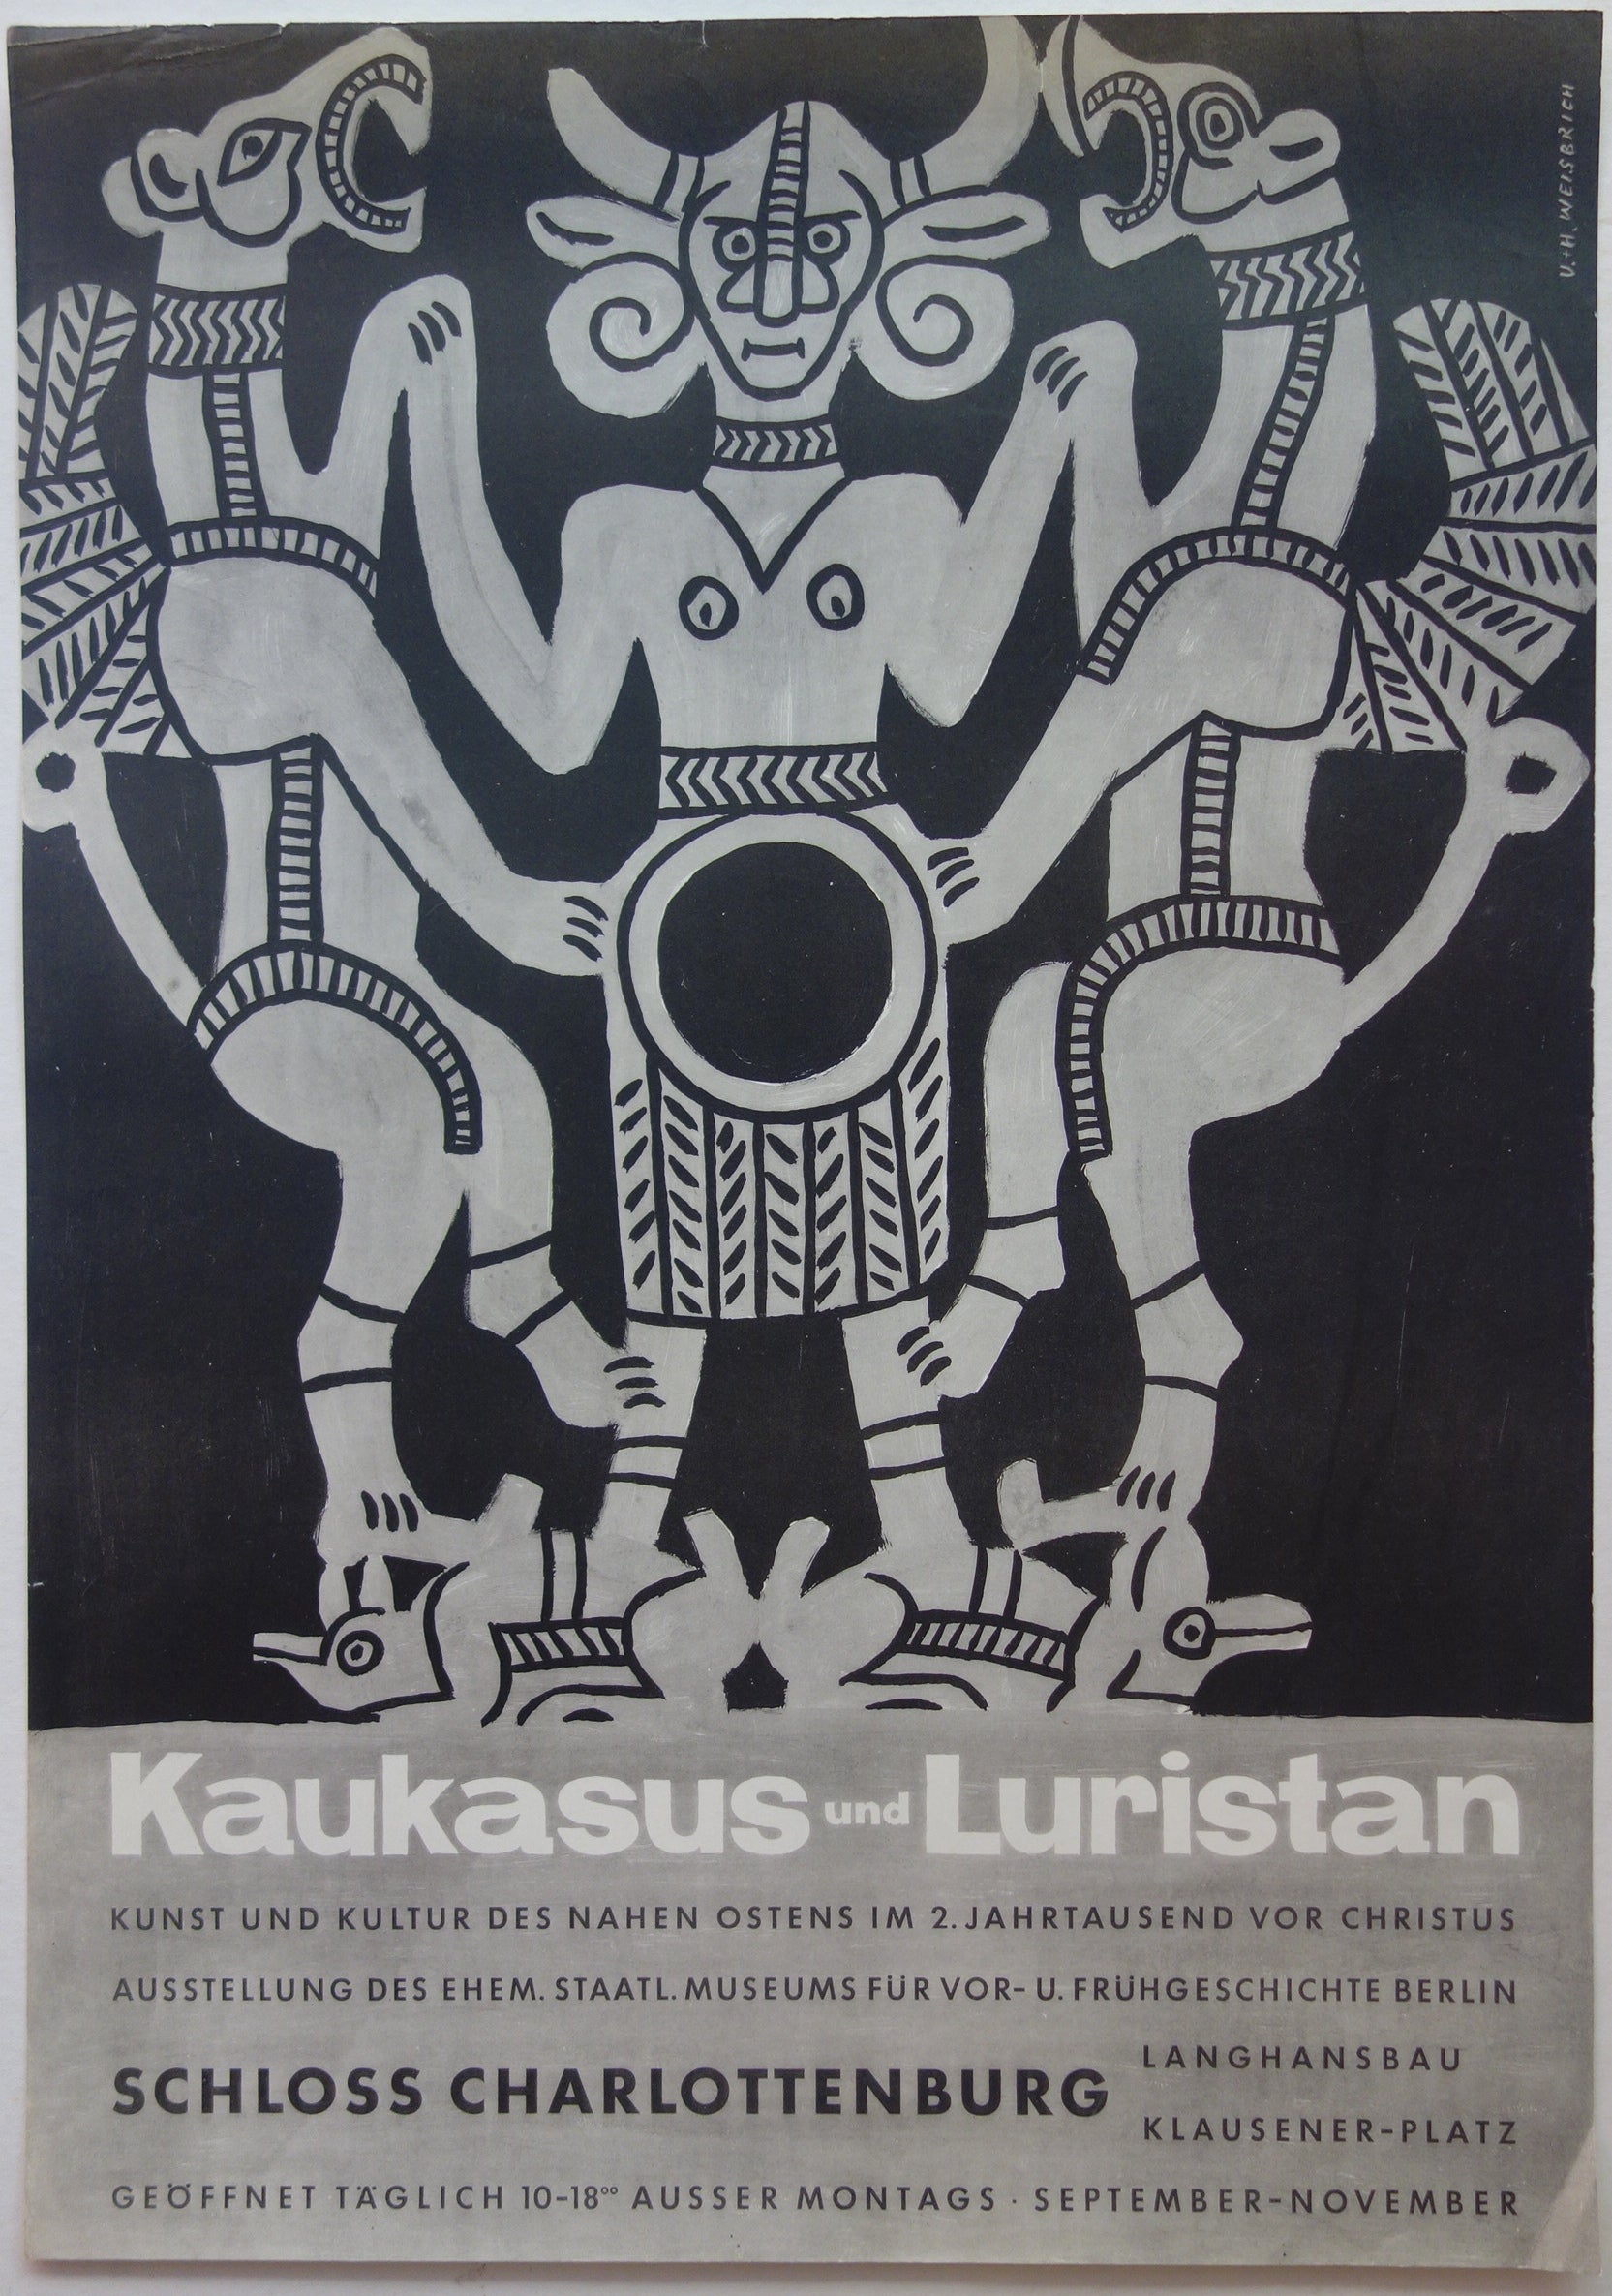 Kaukasus and Luristan